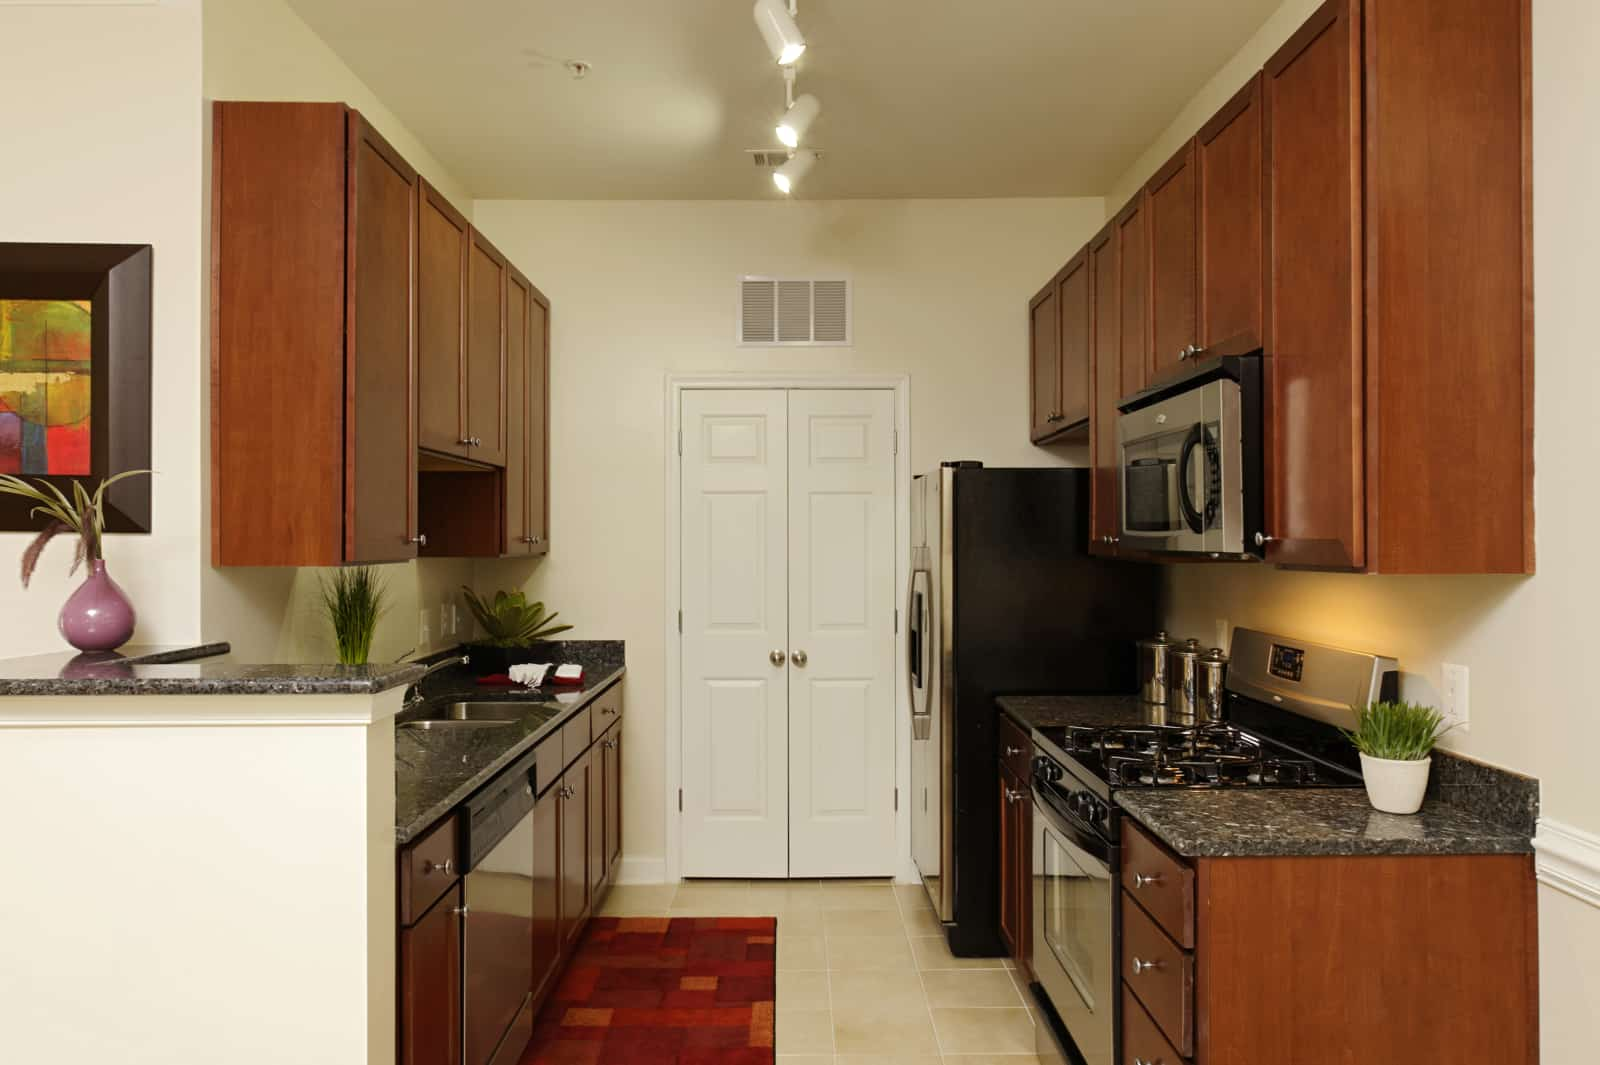 Interior of a galley kitchen with stainless steel appliances.